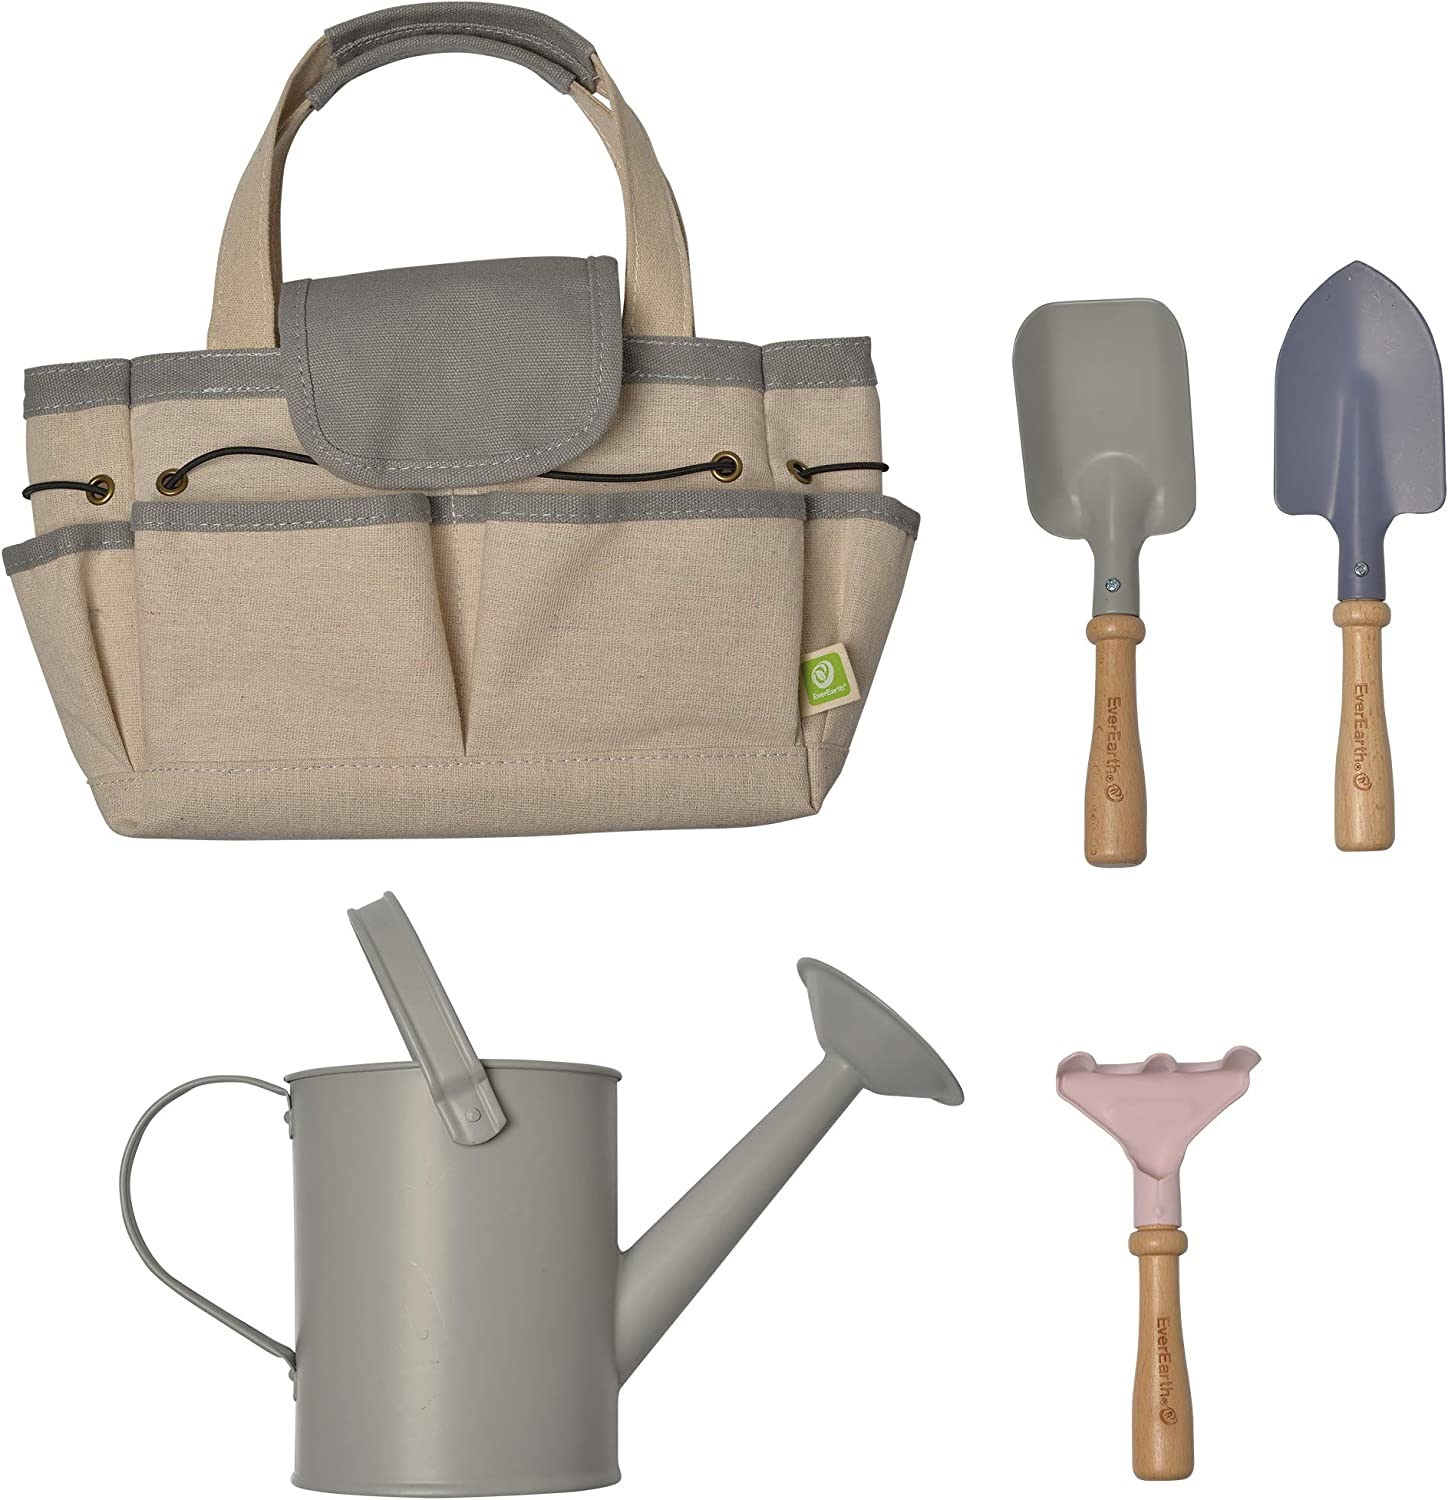 EverEarth #Lifestyle - Gardening Bag with Tools and Watering Can